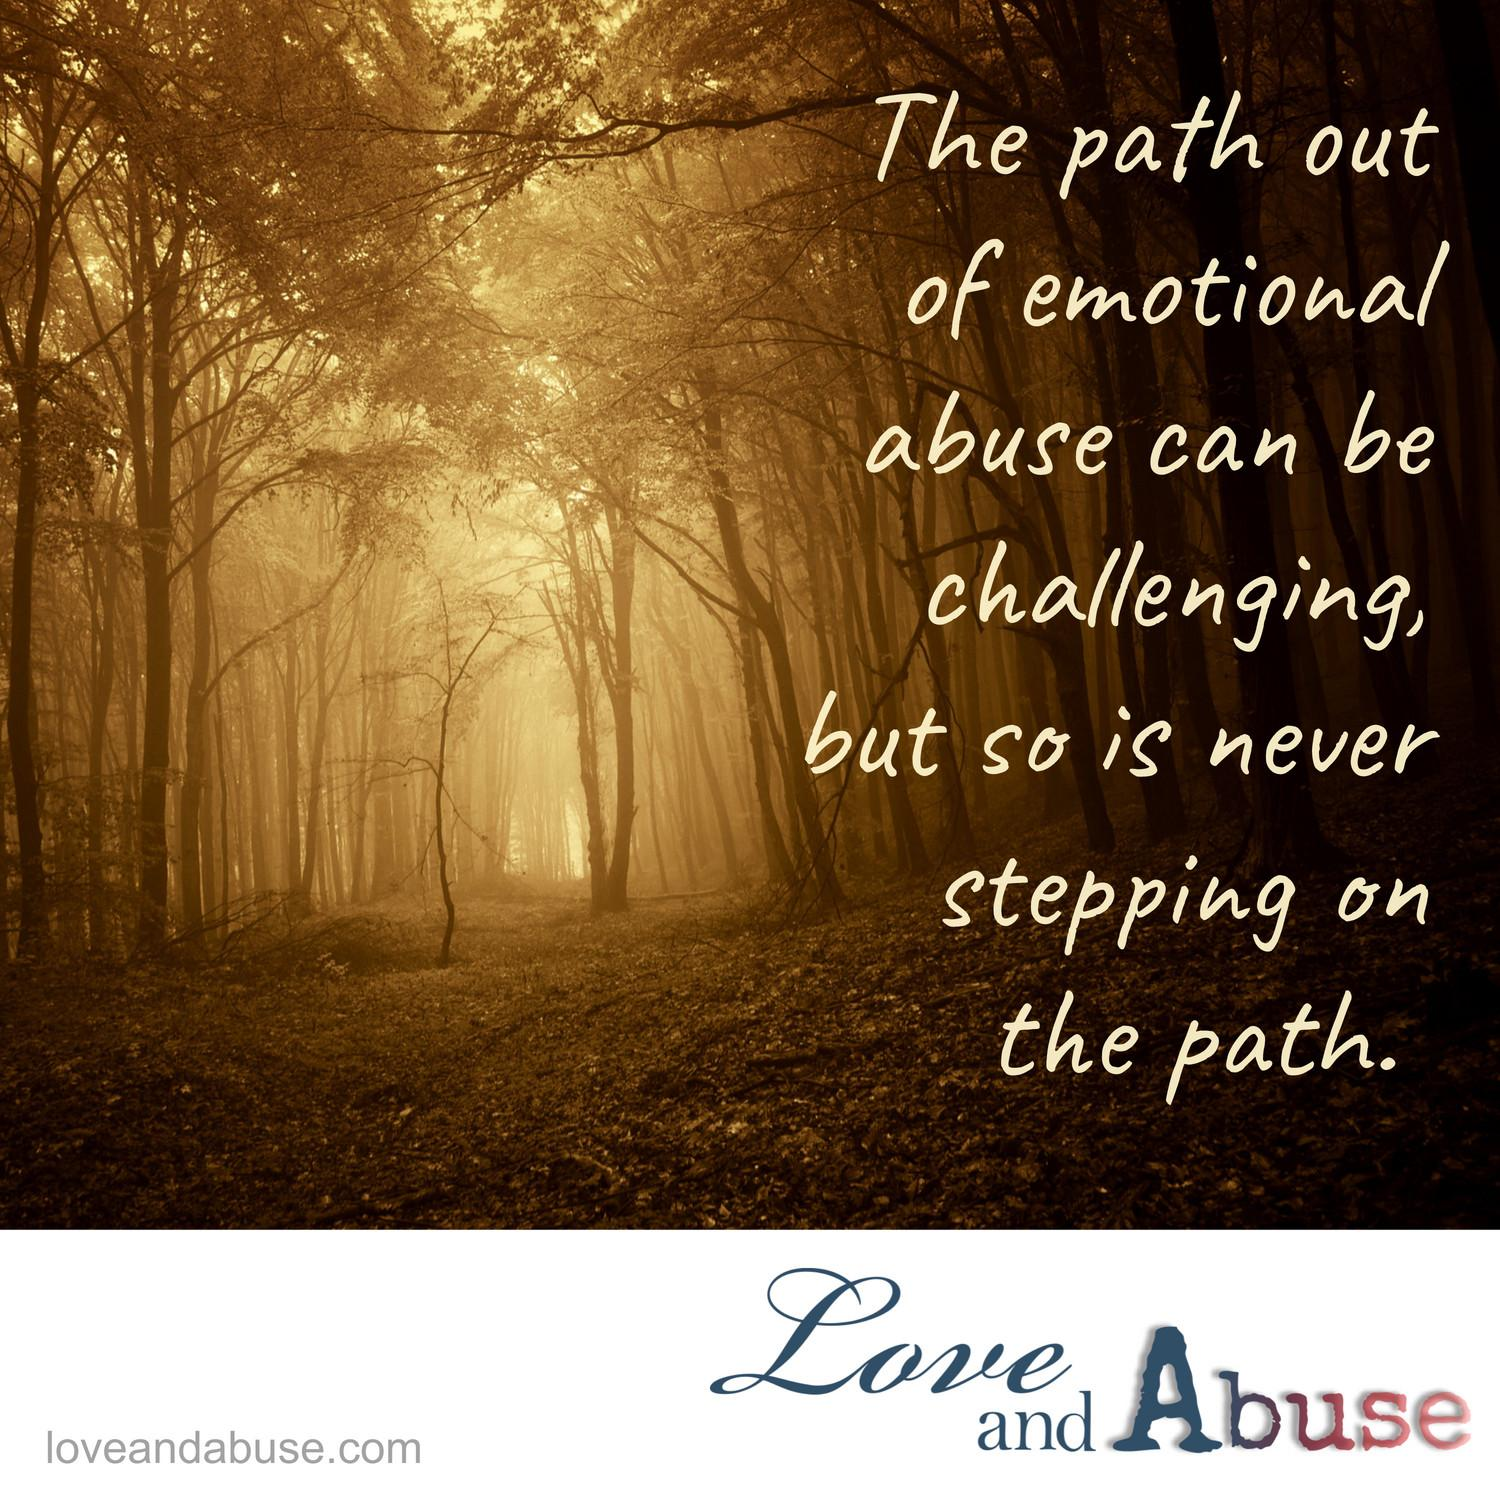 Don't let emotional abuse take your decisions away